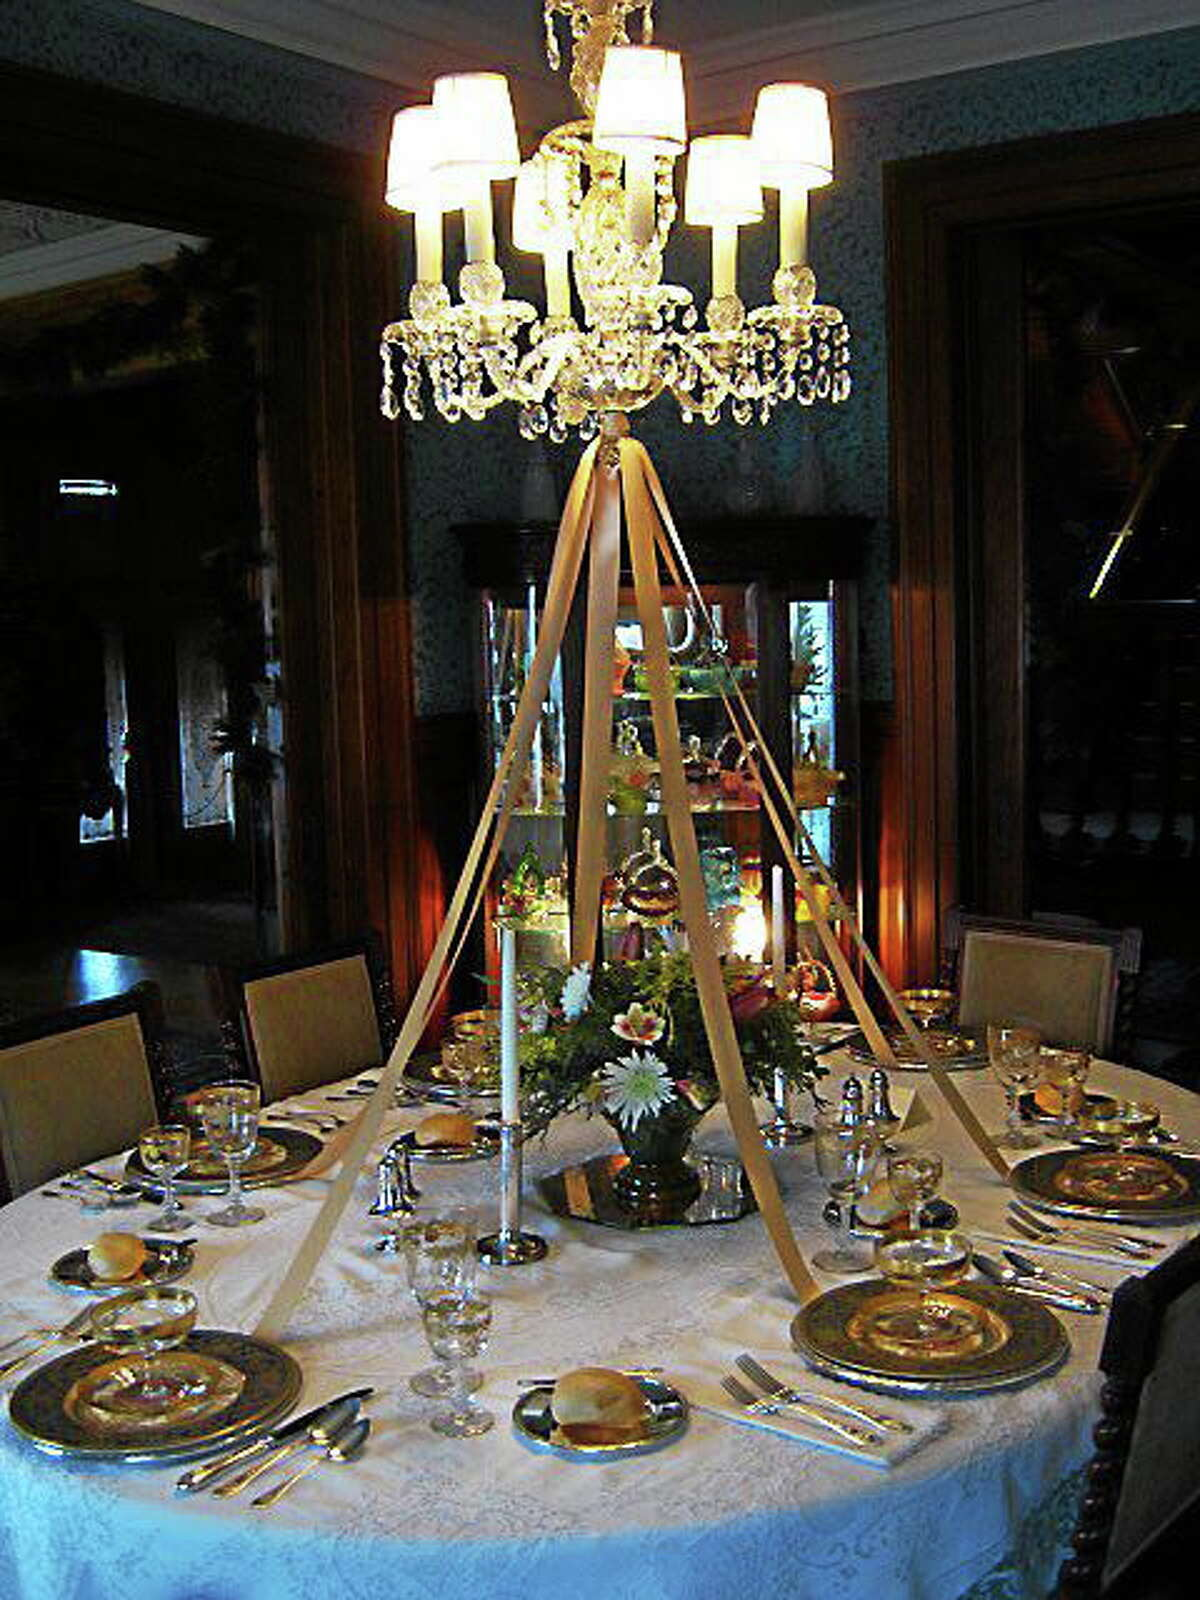 Photographs courtesy of Mark McEachern The Hotchkiss-Fyler House, the gem of the Torrington Historical Society, is decorated for the holiday season and tours run through Dec. 29. Above, the dining room table is set for a Christmas feast.